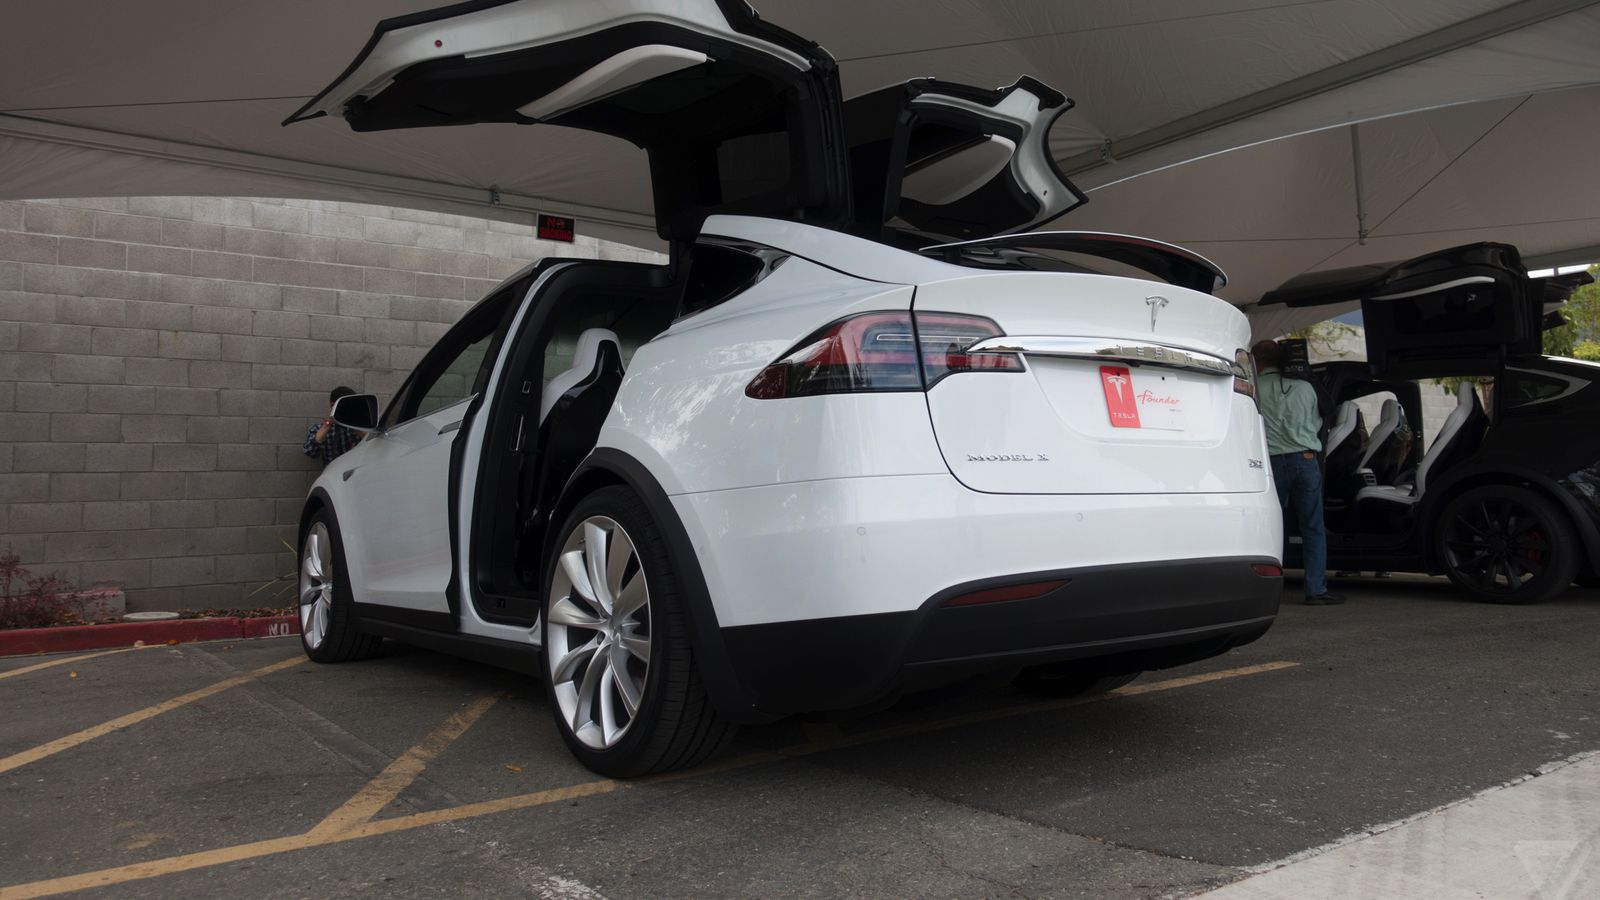 tesla drops model x price by another 3 000 the verge. Black Bedroom Furniture Sets. Home Design Ideas